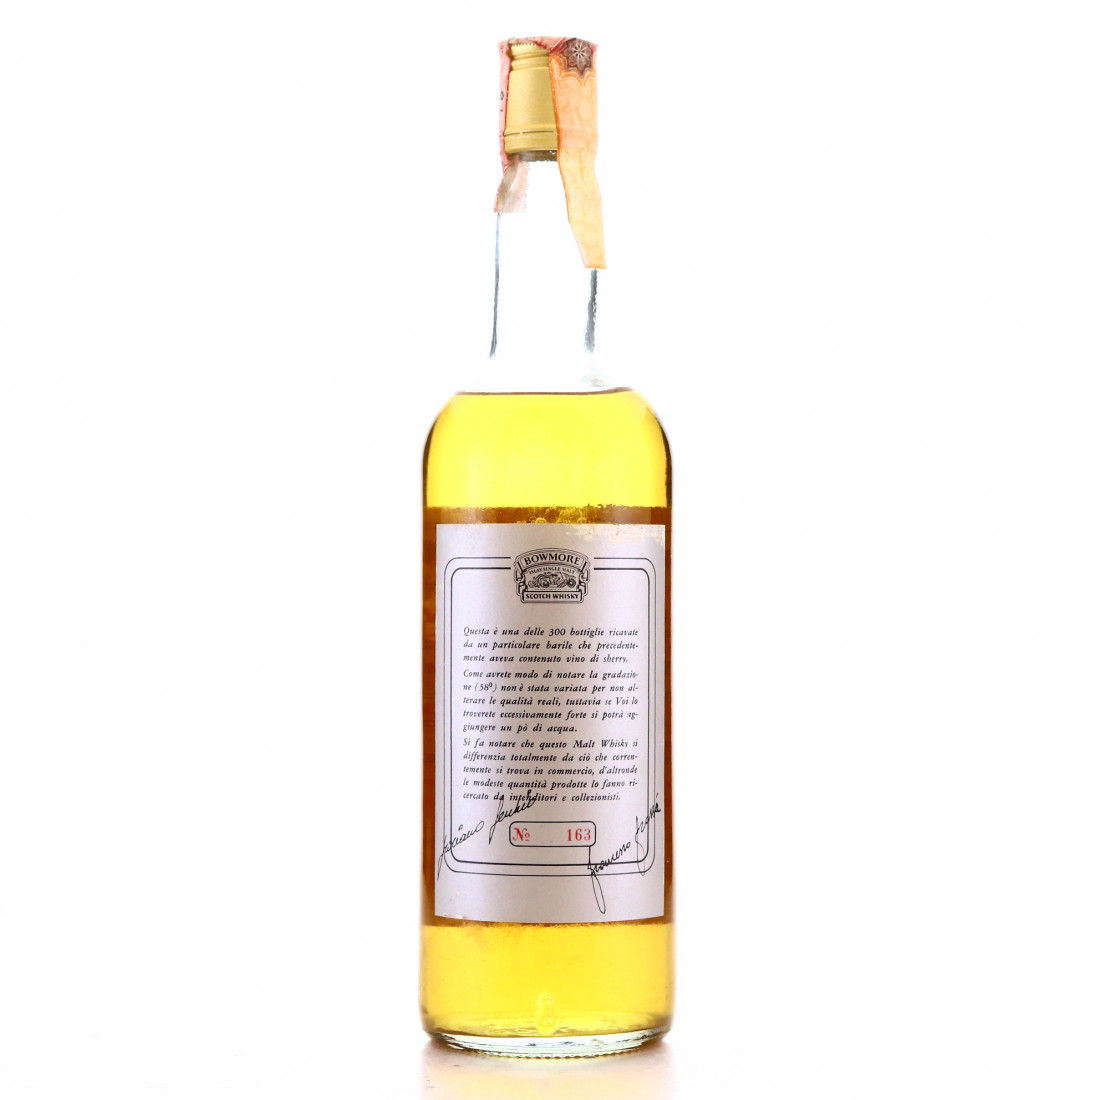 Bowmore 1969 Single Cask #6634 for Edoardo Giaccone / Fecchio & Frassa Import